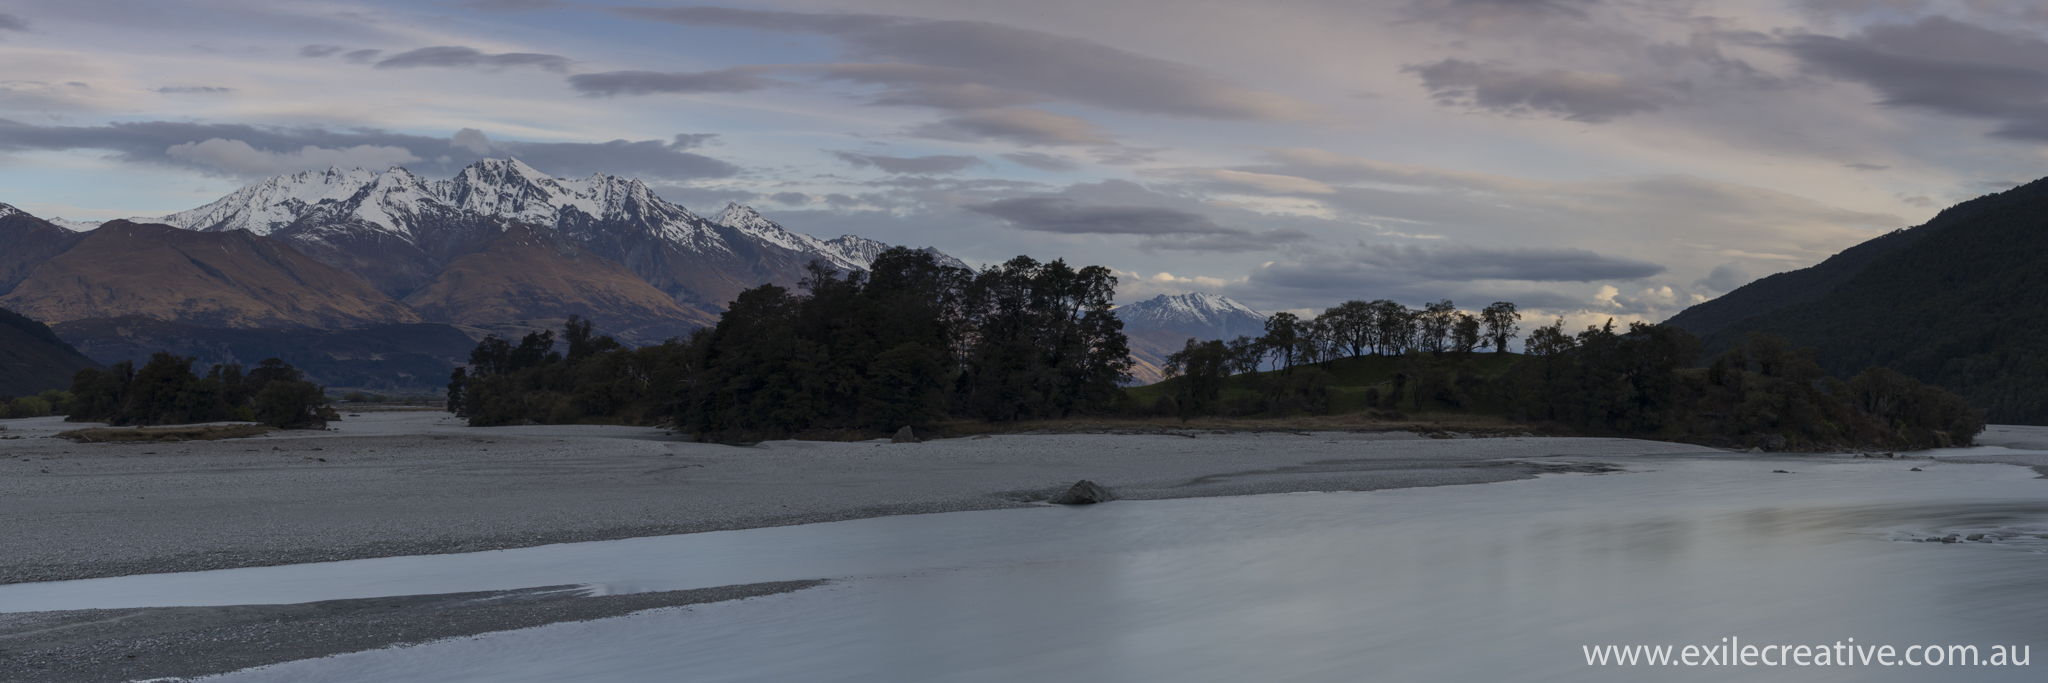 Shooting South off the bridge on the Glenorchy-Routeburn rd.  Stitched Panorama in portrait  Canon 5Dmiii, 100-400L IS ii @ 100mm, ISO100, f29, 10s, Nisi 0.6ND & B+W CPL